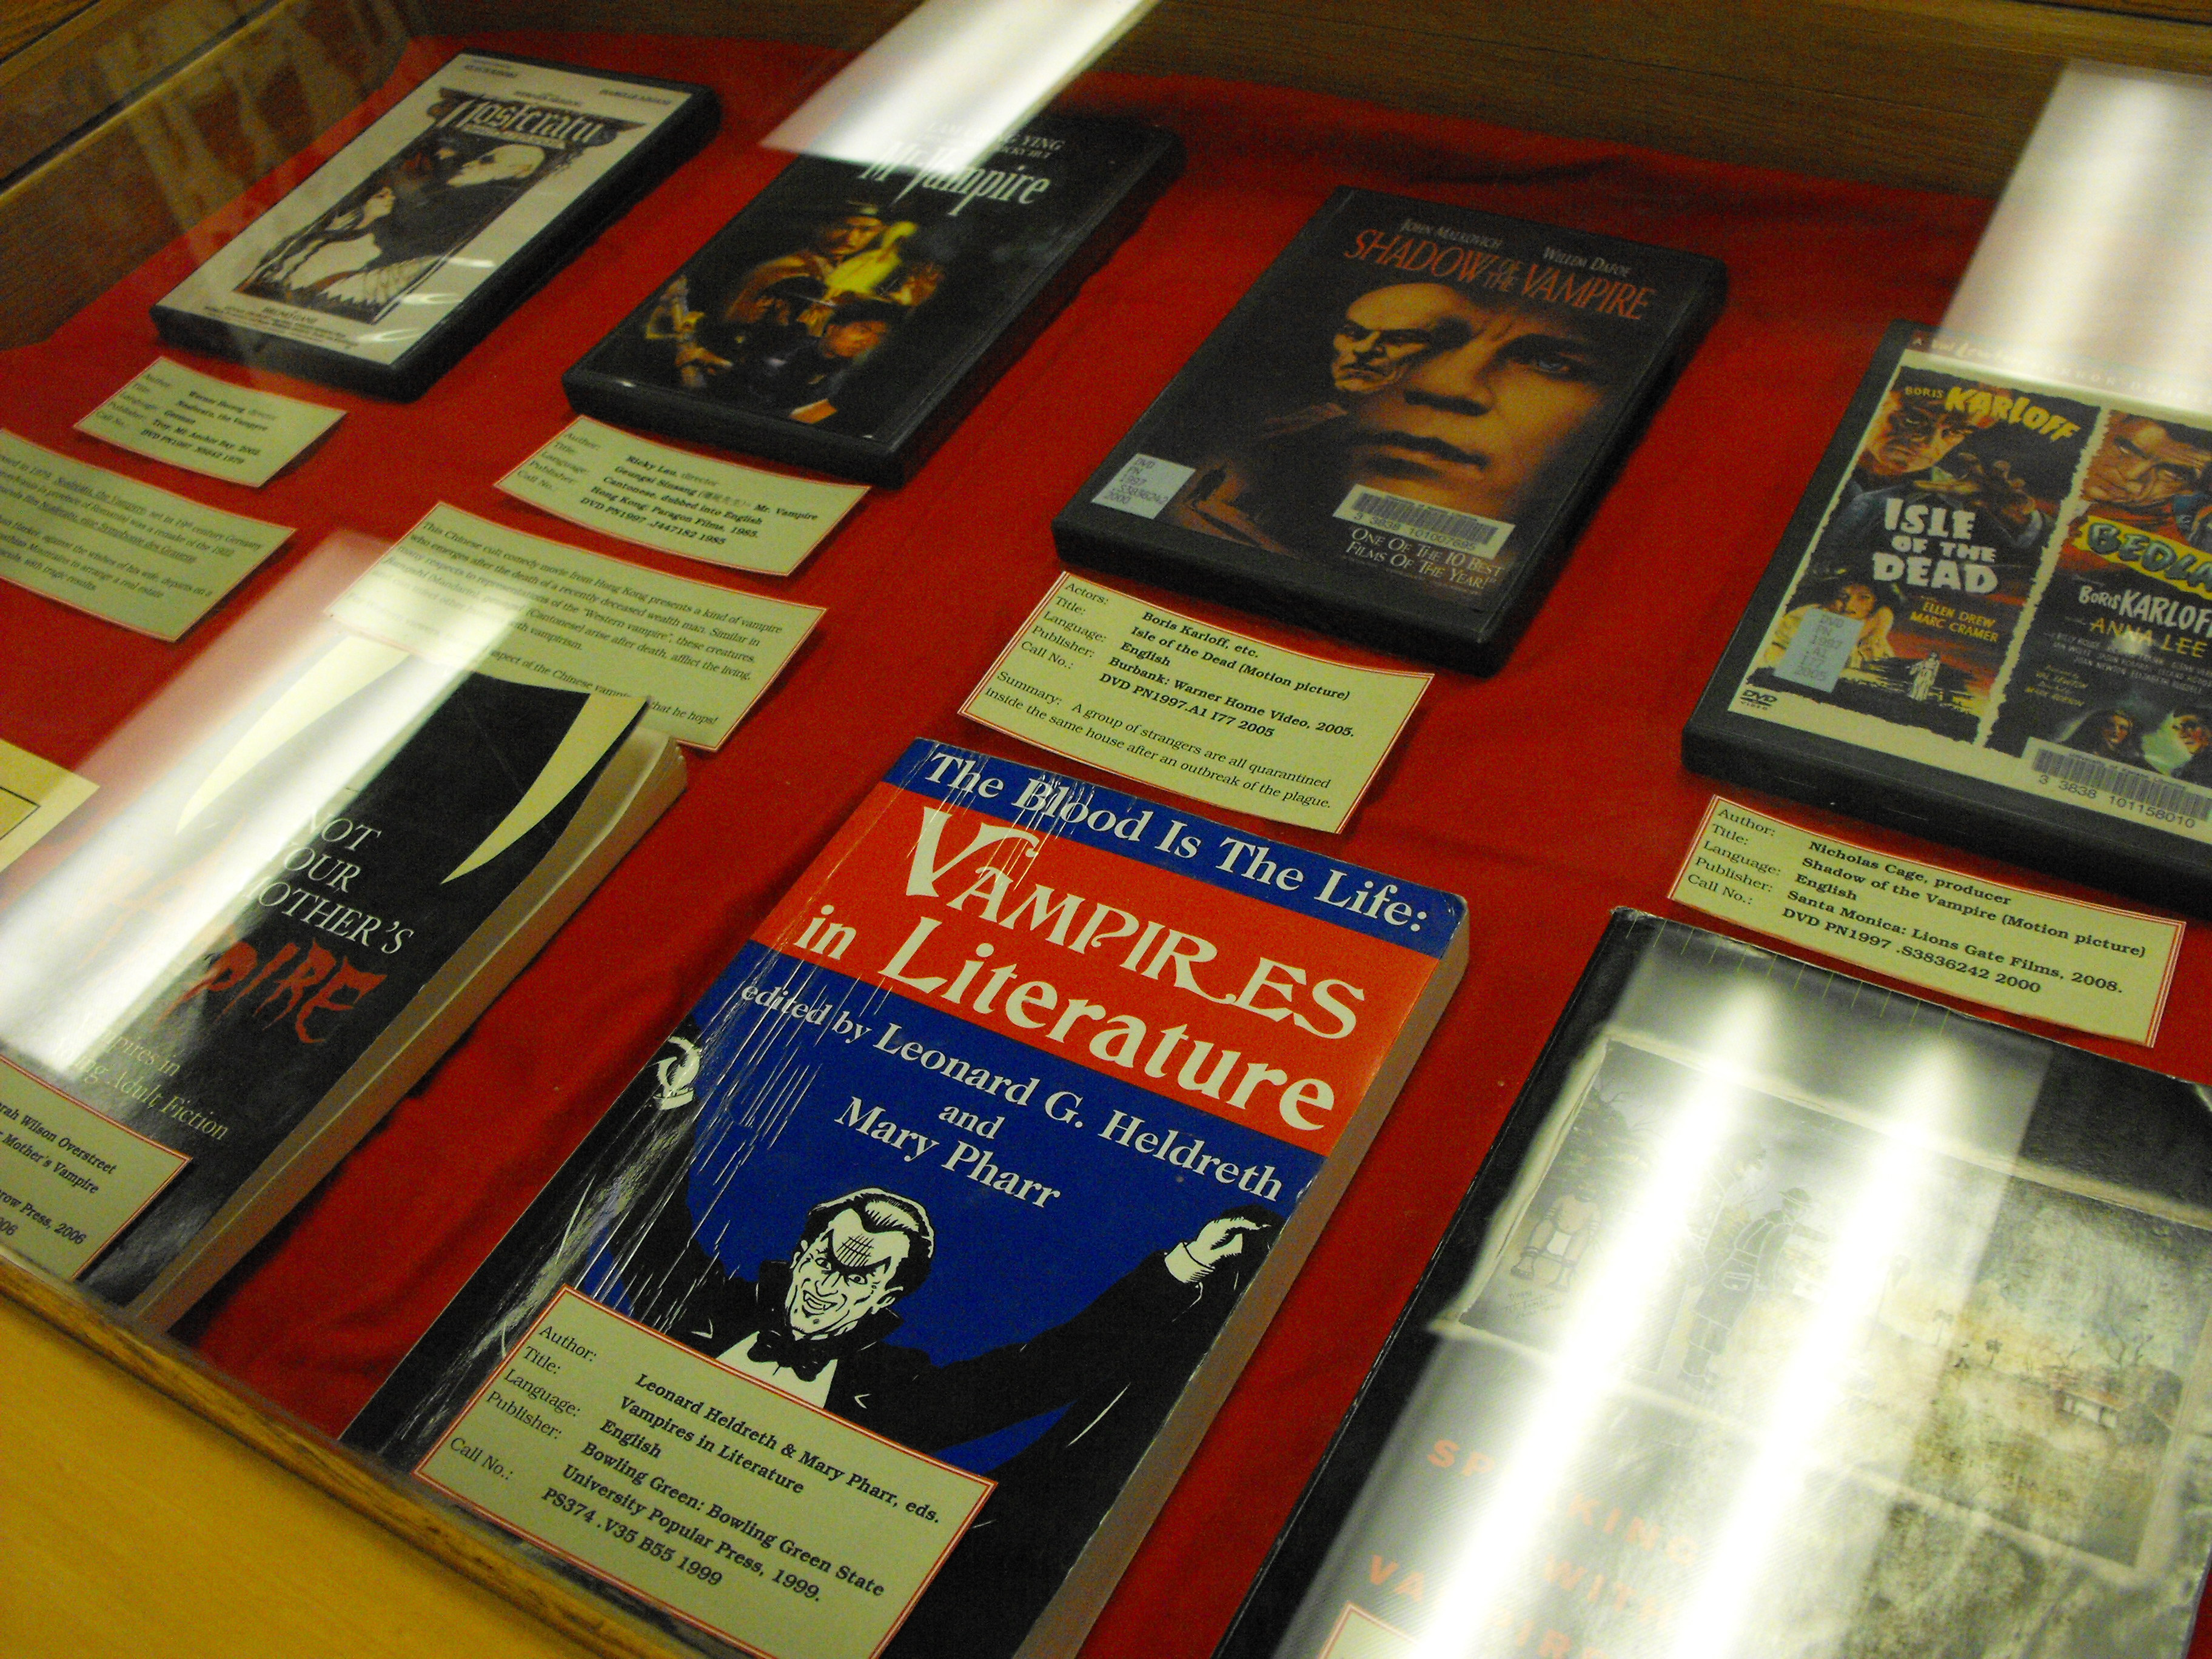 Book display of literature relating to vampires